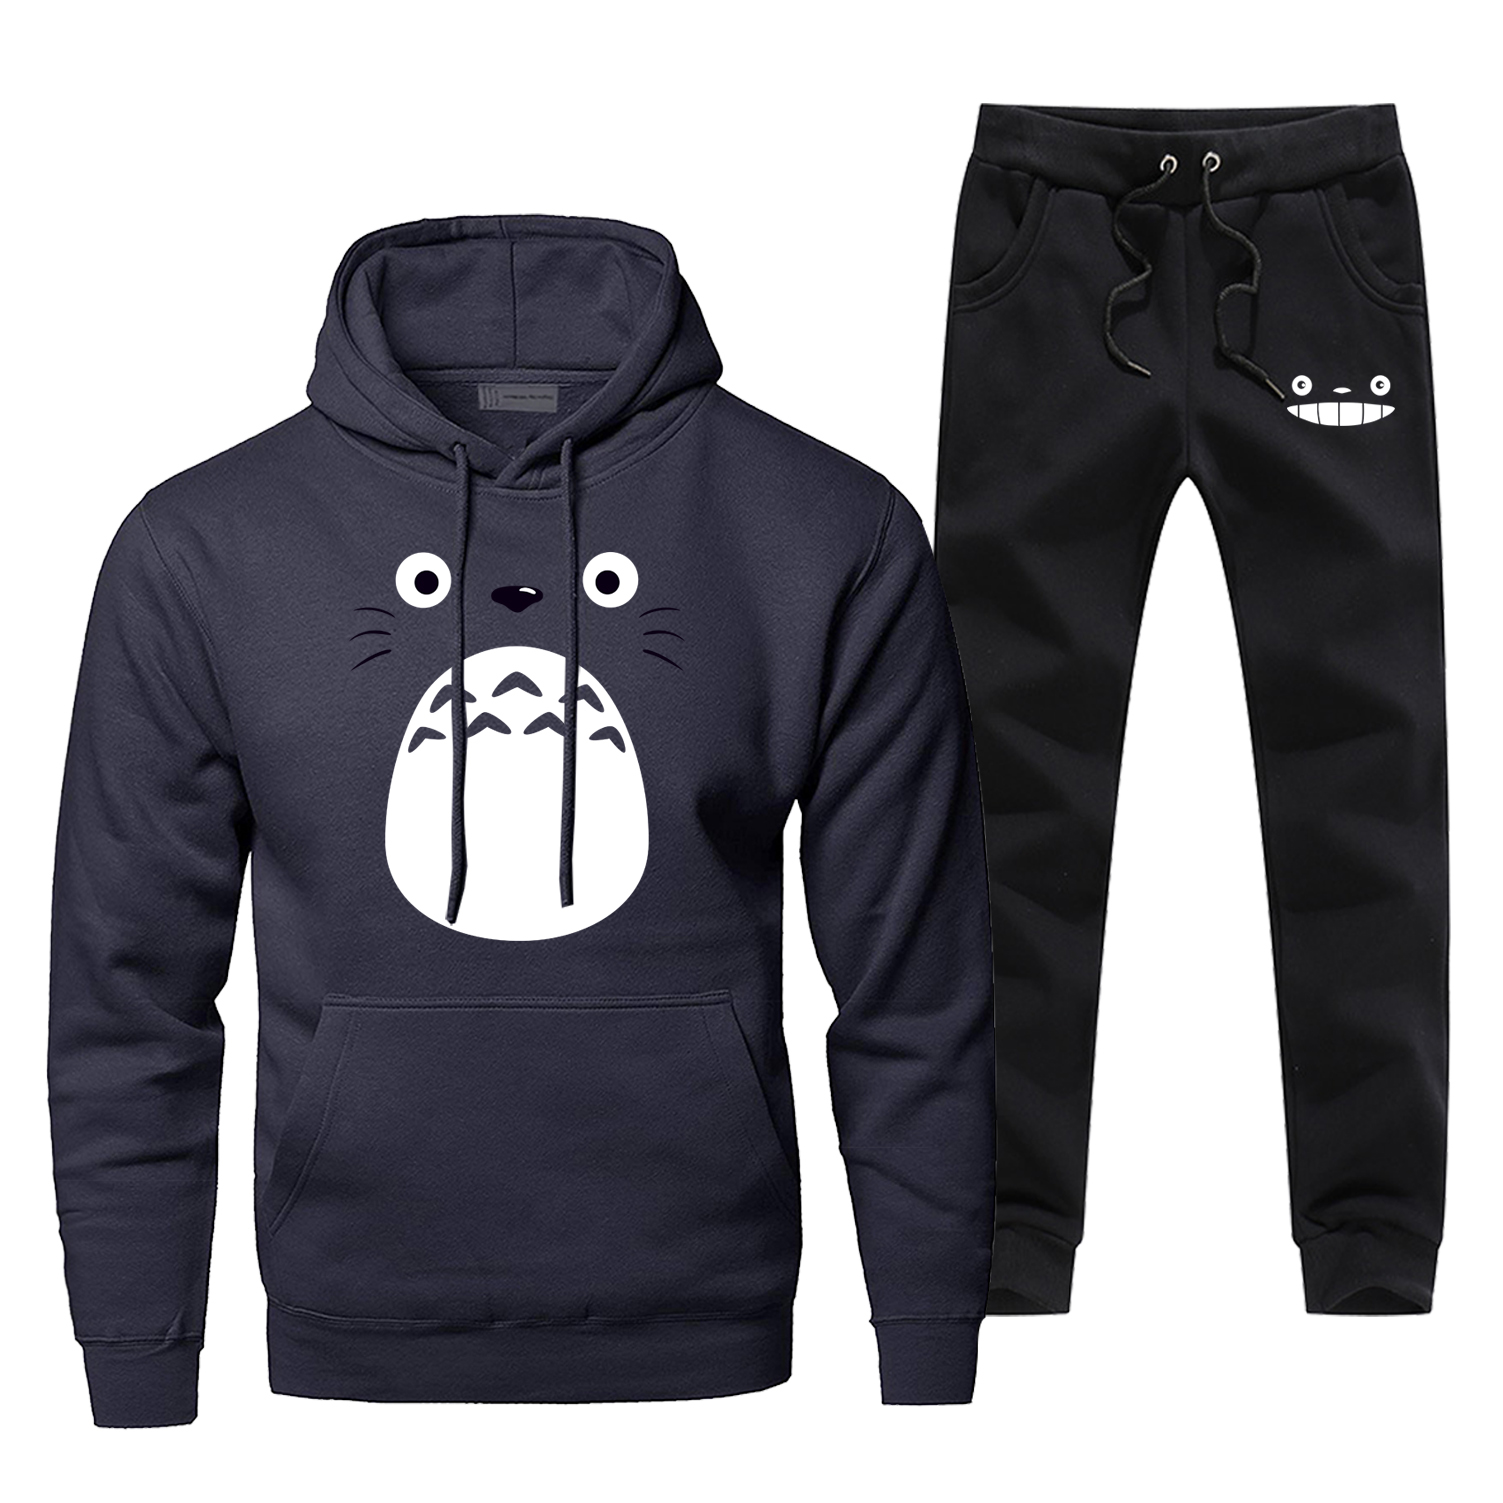 Japan Anime Men's Full Suit Tracksuit Fashion Casual Tonari No Totoro Sportsman Wear Winter Bodywarmer Pants Sweatshirt Sets